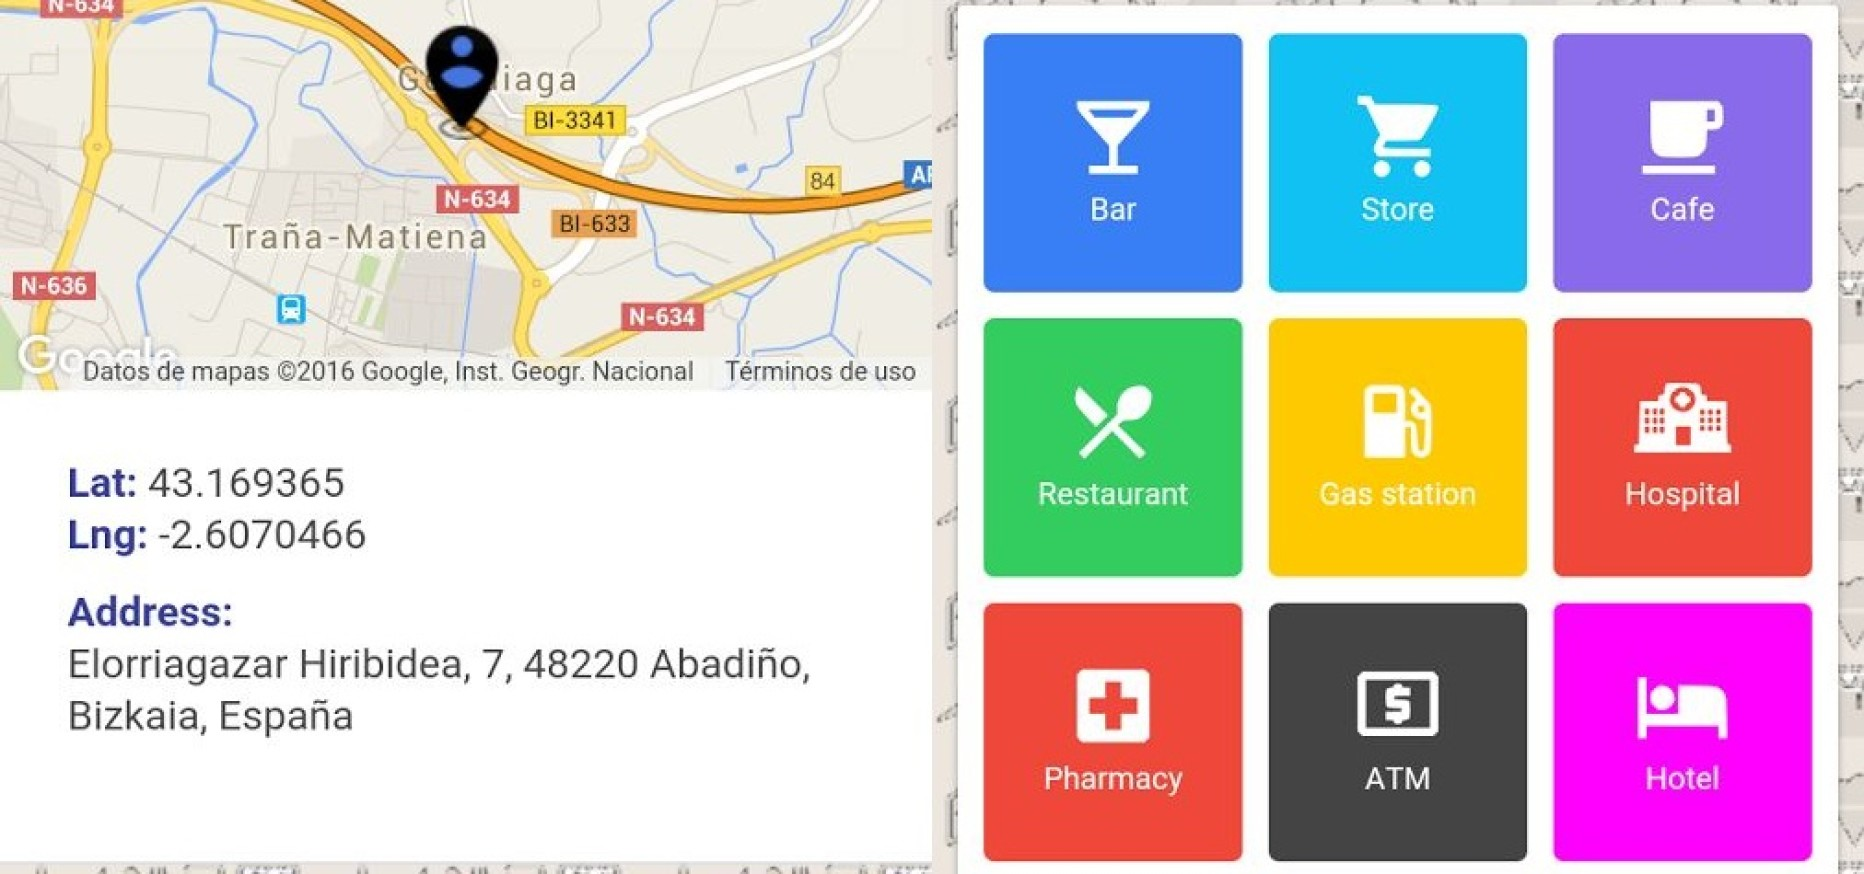 Whataplace Helps You Find Where You Want to Go